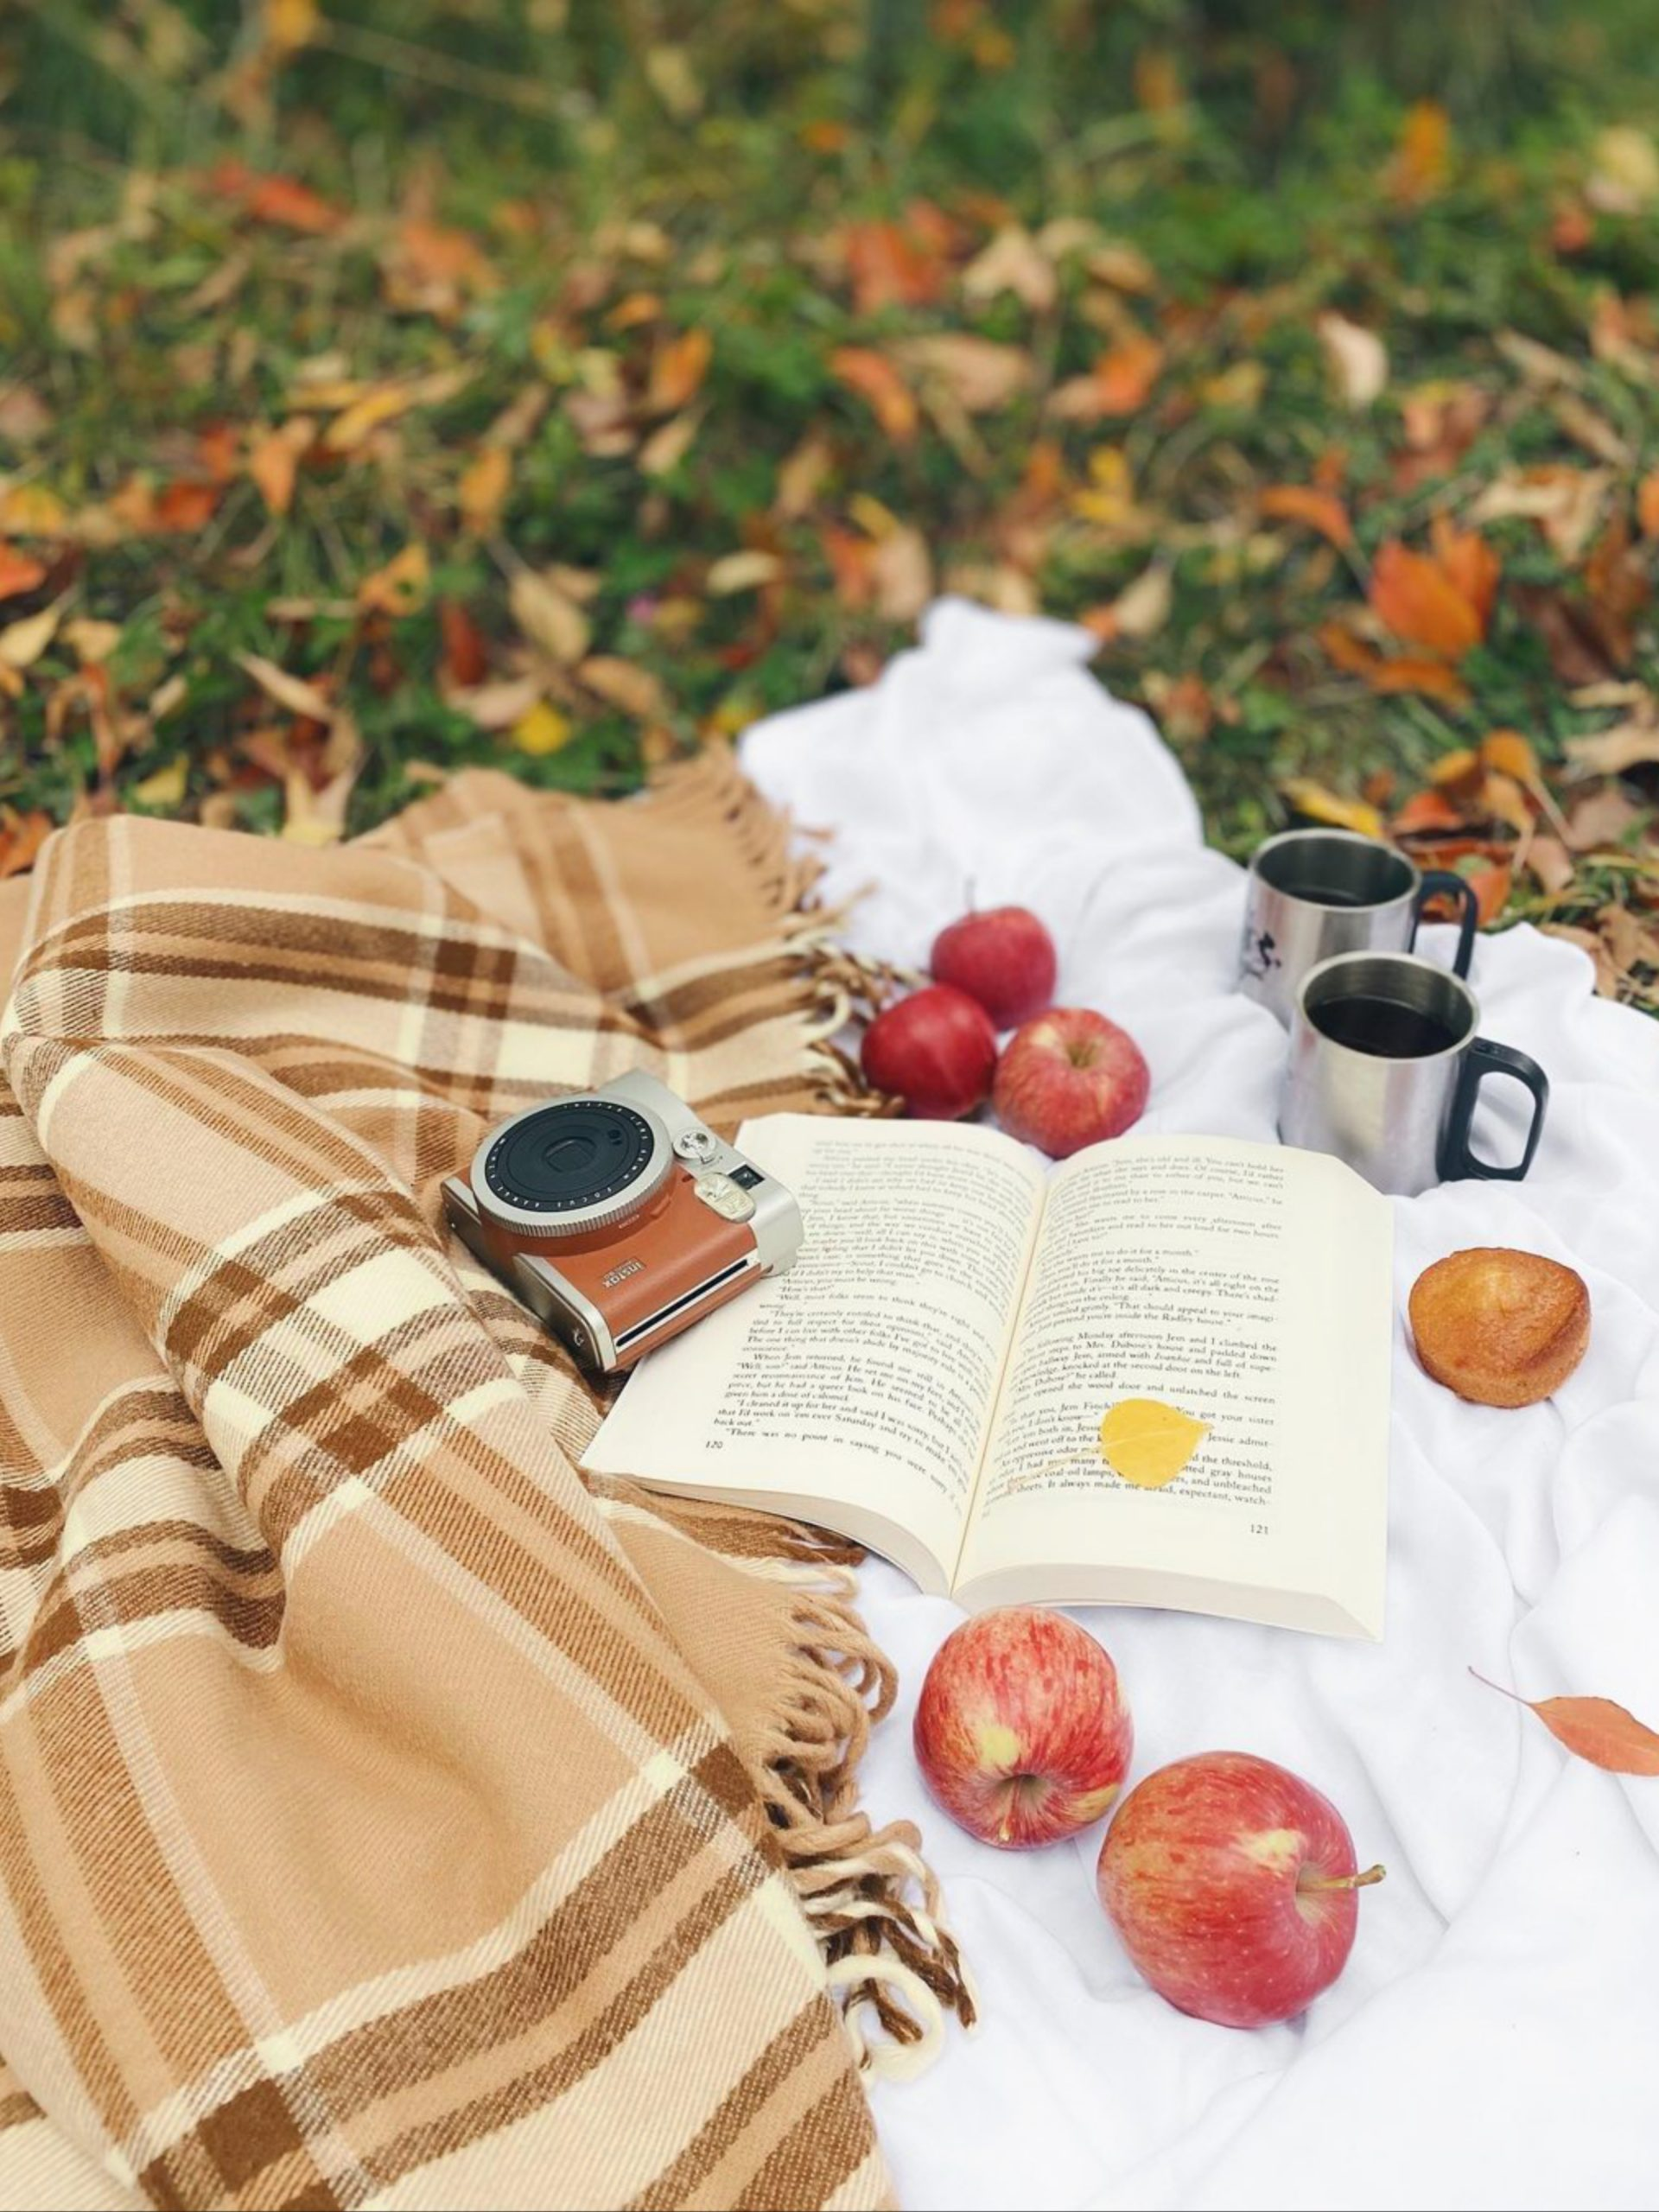 Apple, book and mugs